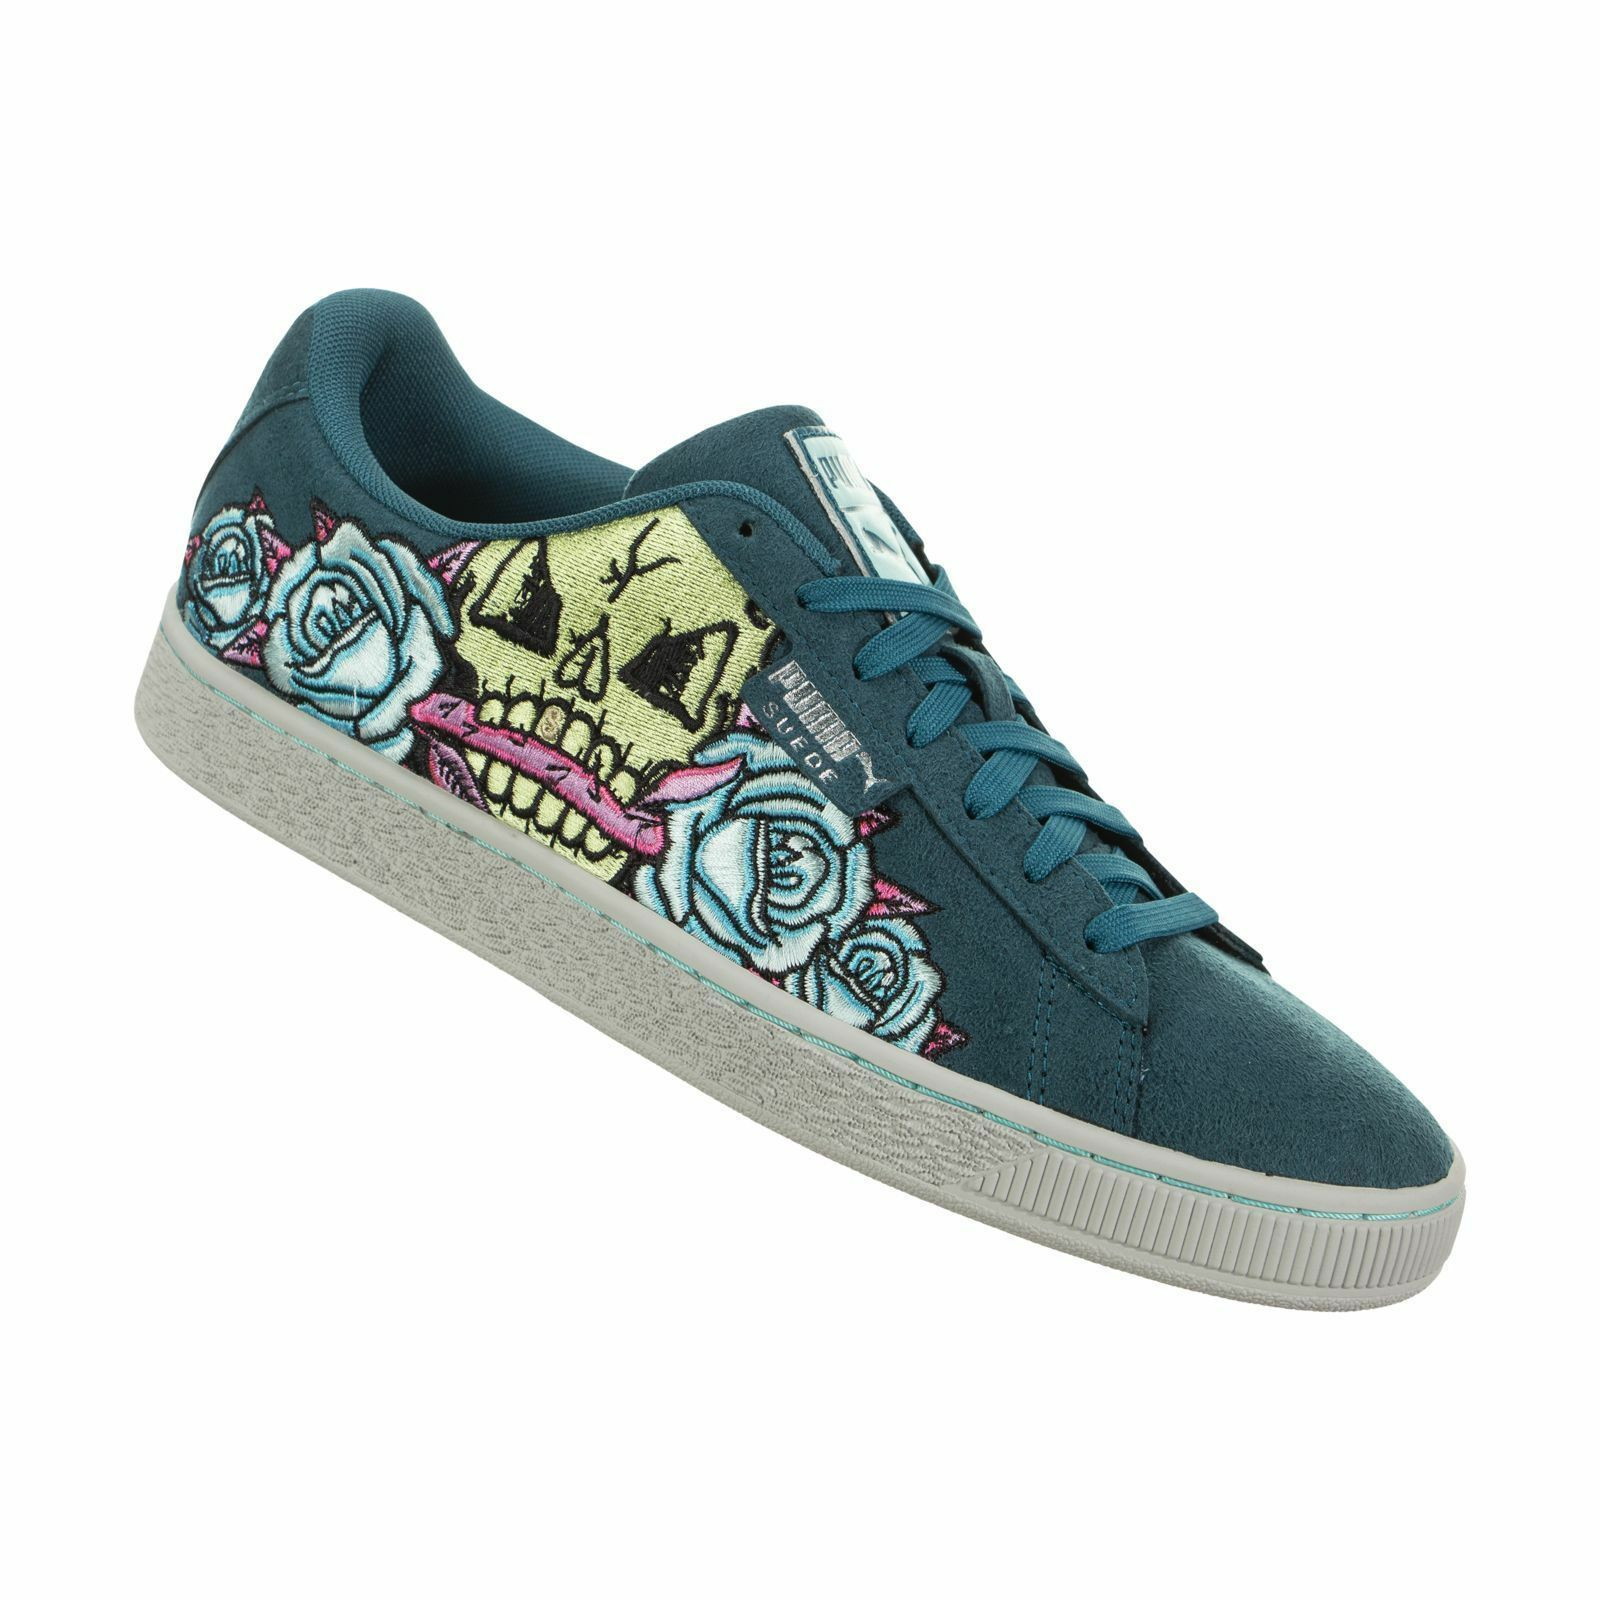 PUMA - 368358 03 - COURT CLASSIC SKULL PATCH - Men's shoes - TEAL - Size 10